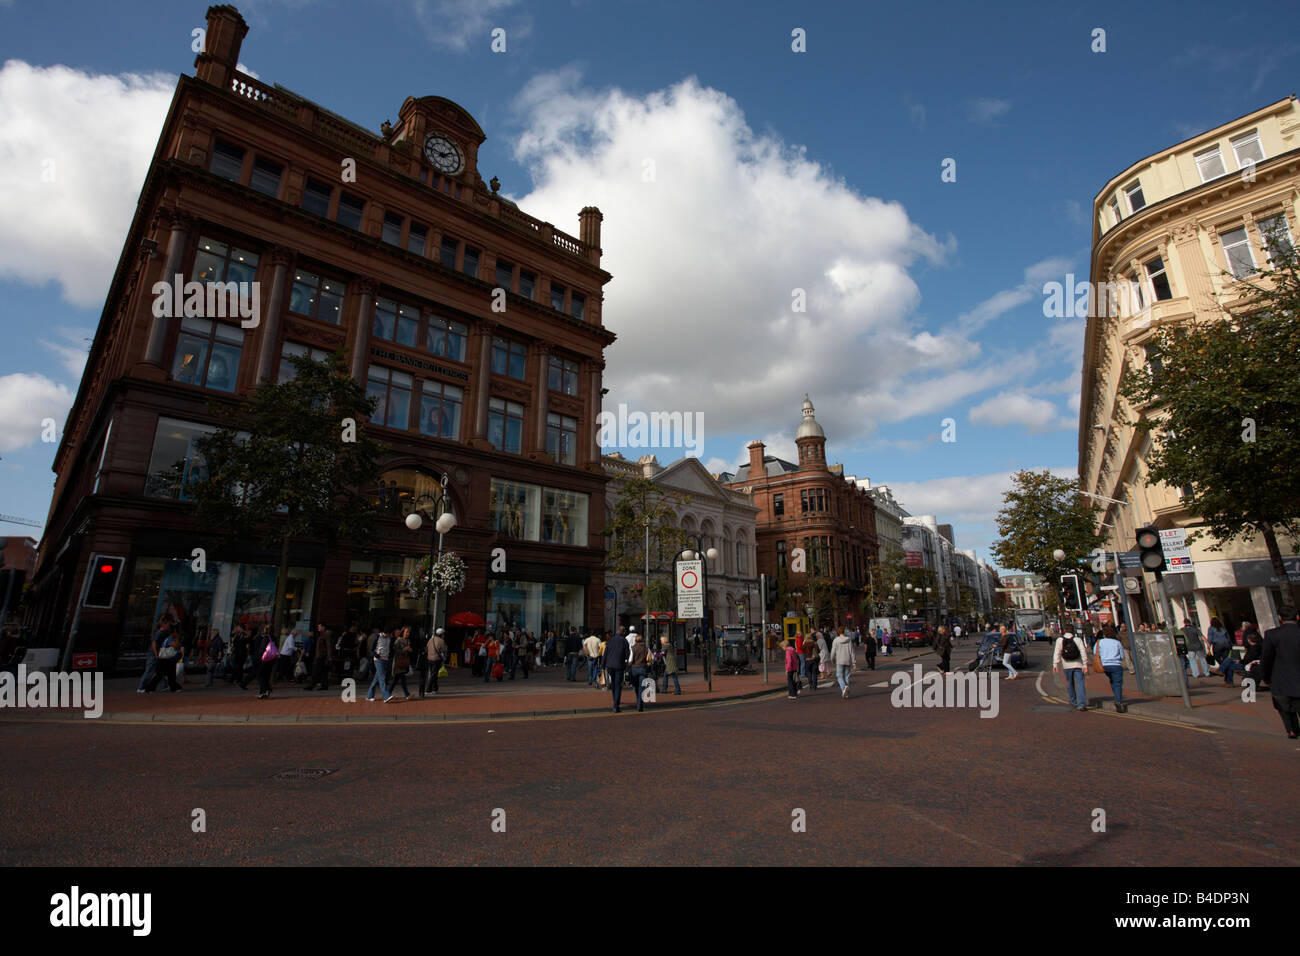 Bank Buildings at Castle Junction and Royal Avenue shopping area belfast city centre northern ireland uk - Stock Image